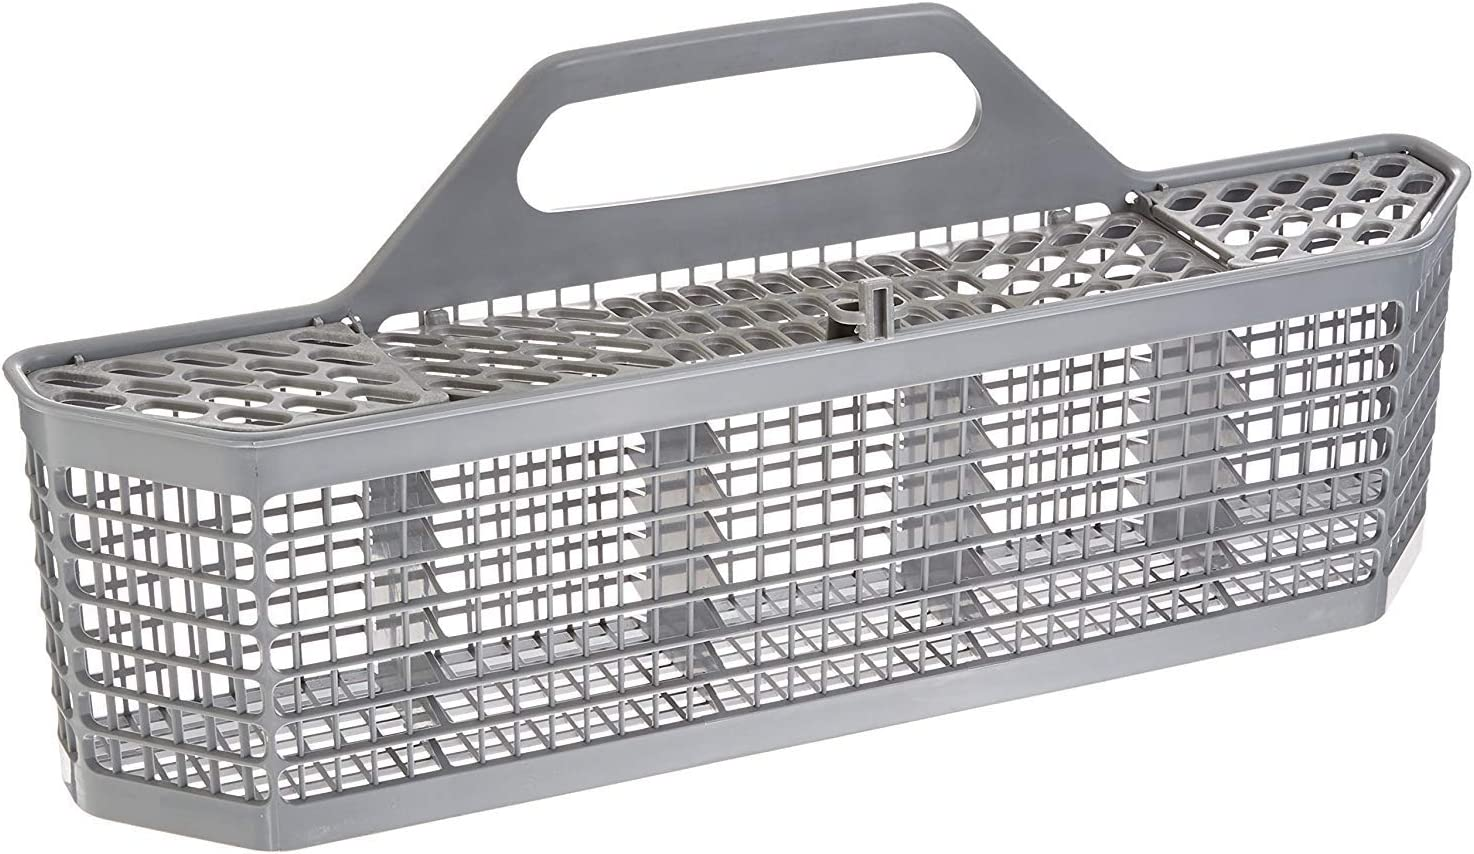 Lifetime Appliance WD28X10128 Silverware Basket for General Electric (GE) Dishwasher